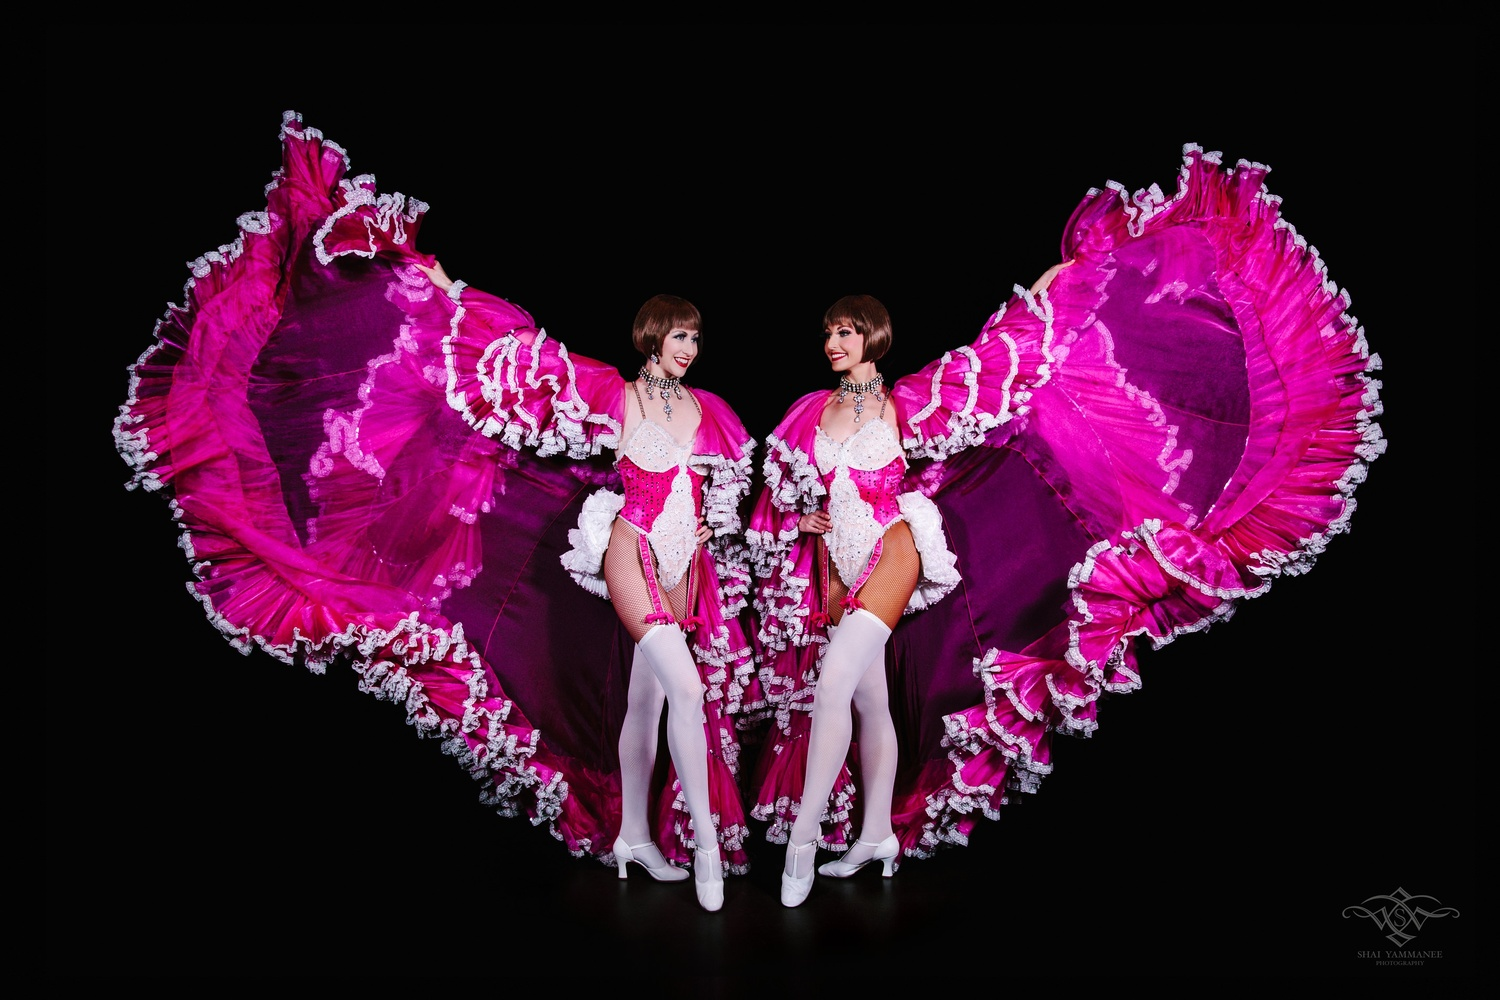 Julie & Jess - Dollies from the Follies by Shai Yammanee